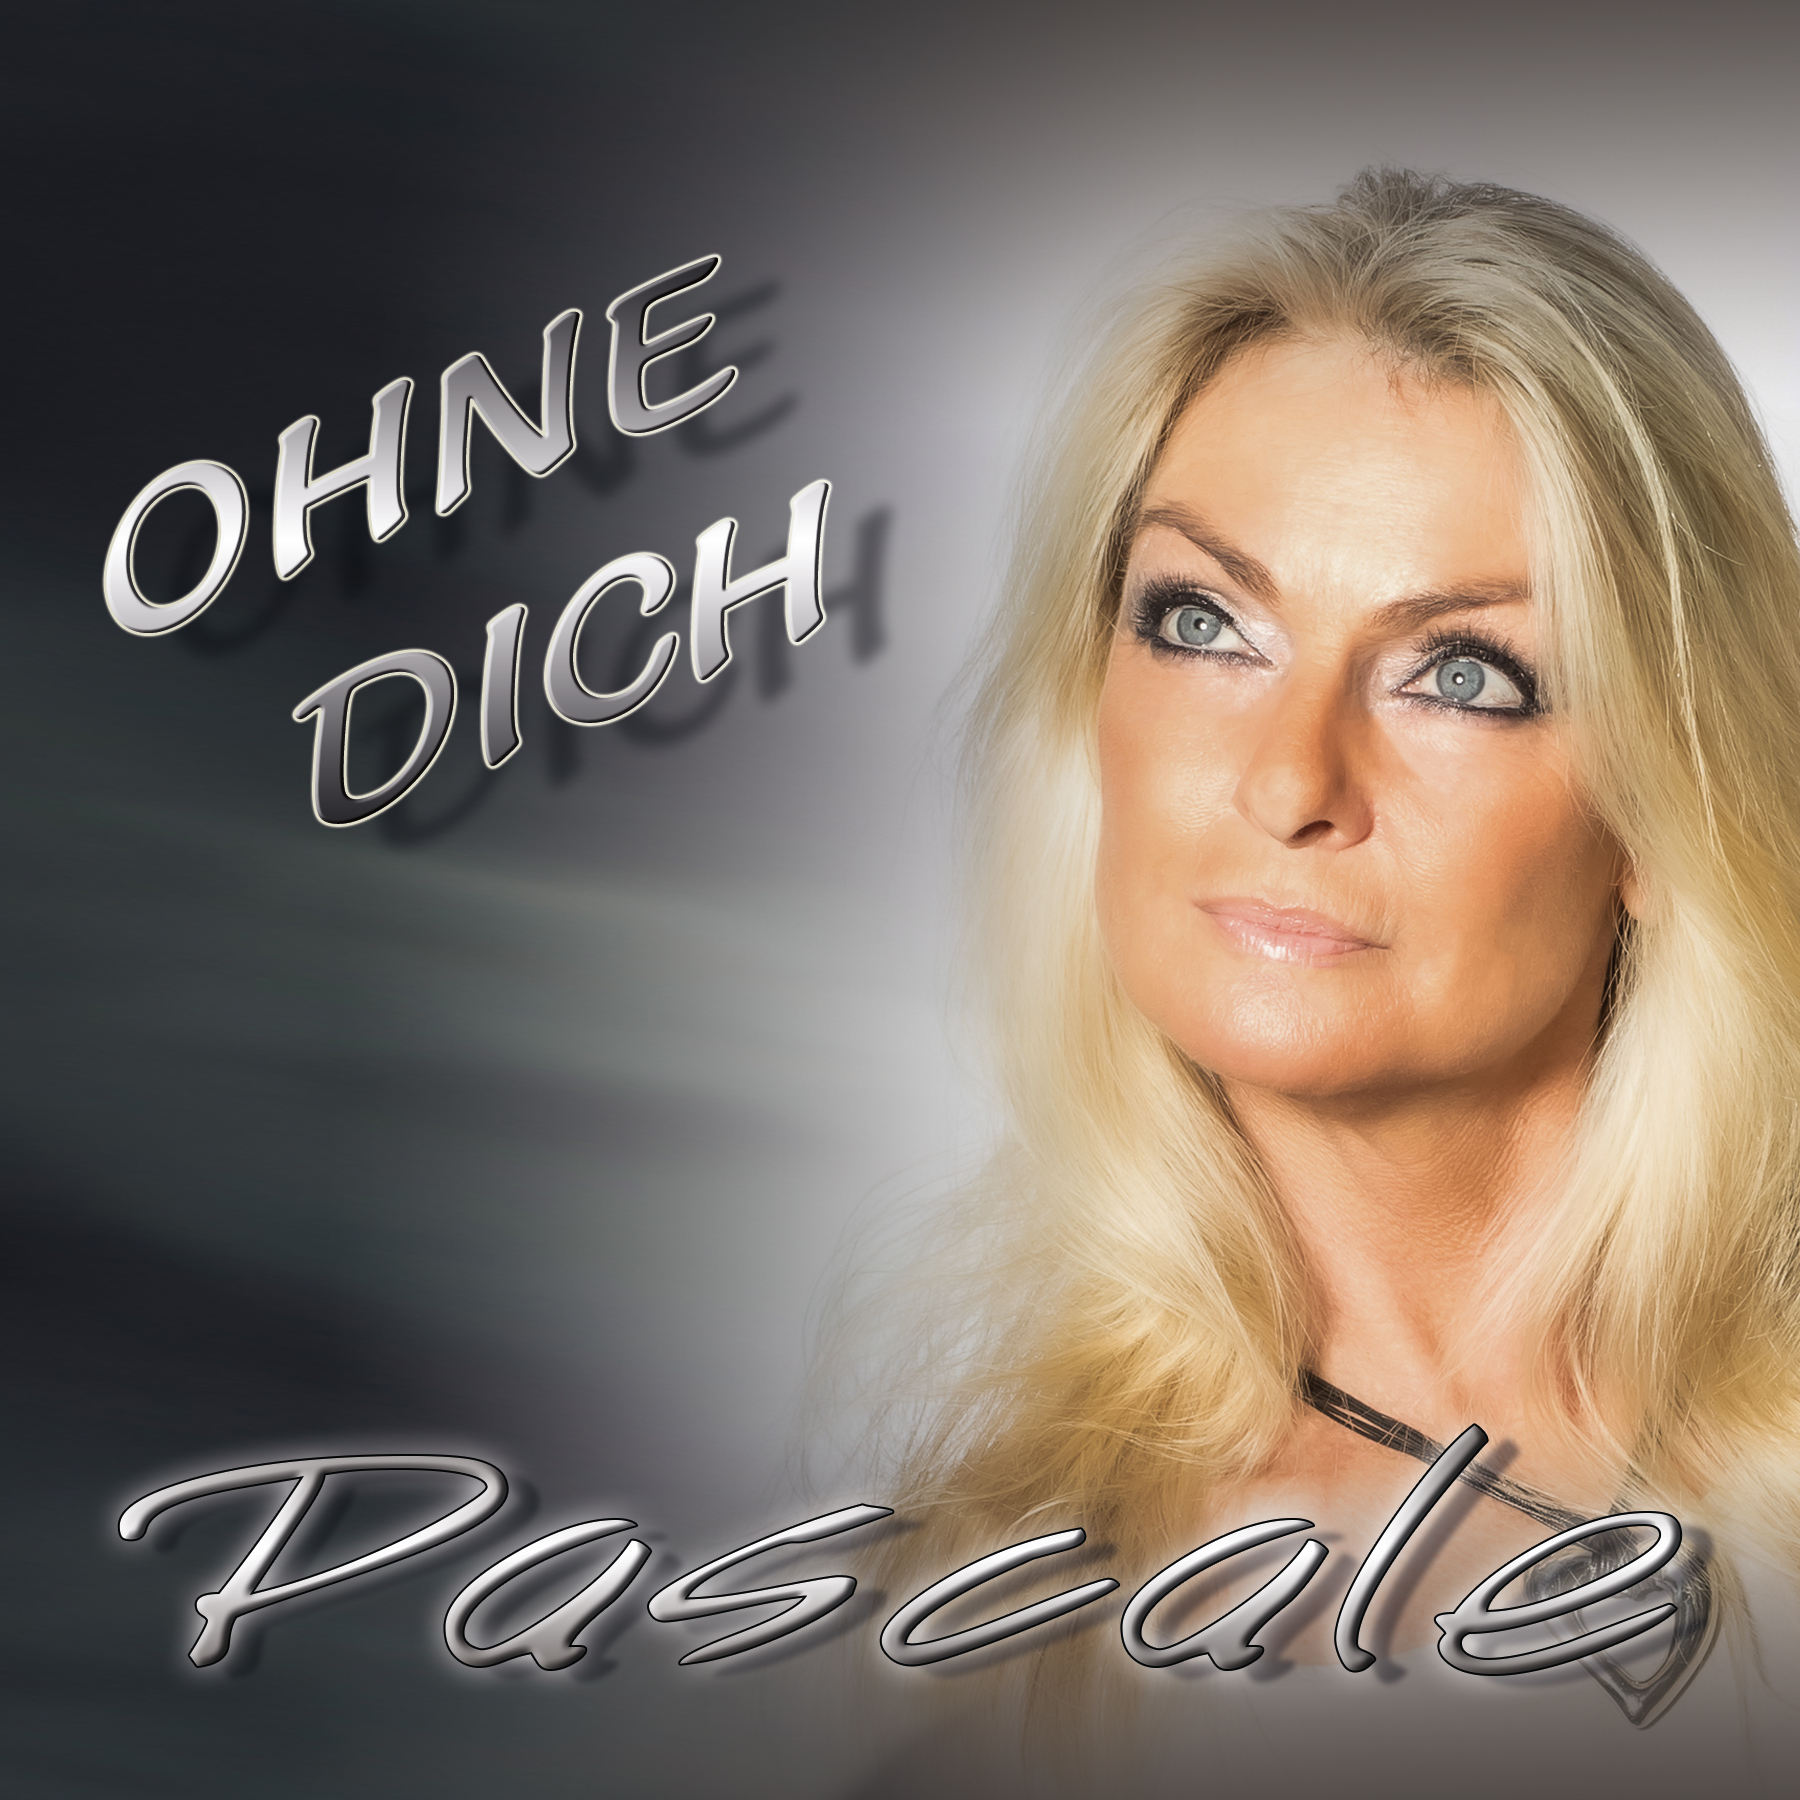 PASCALE - Ohne Dich